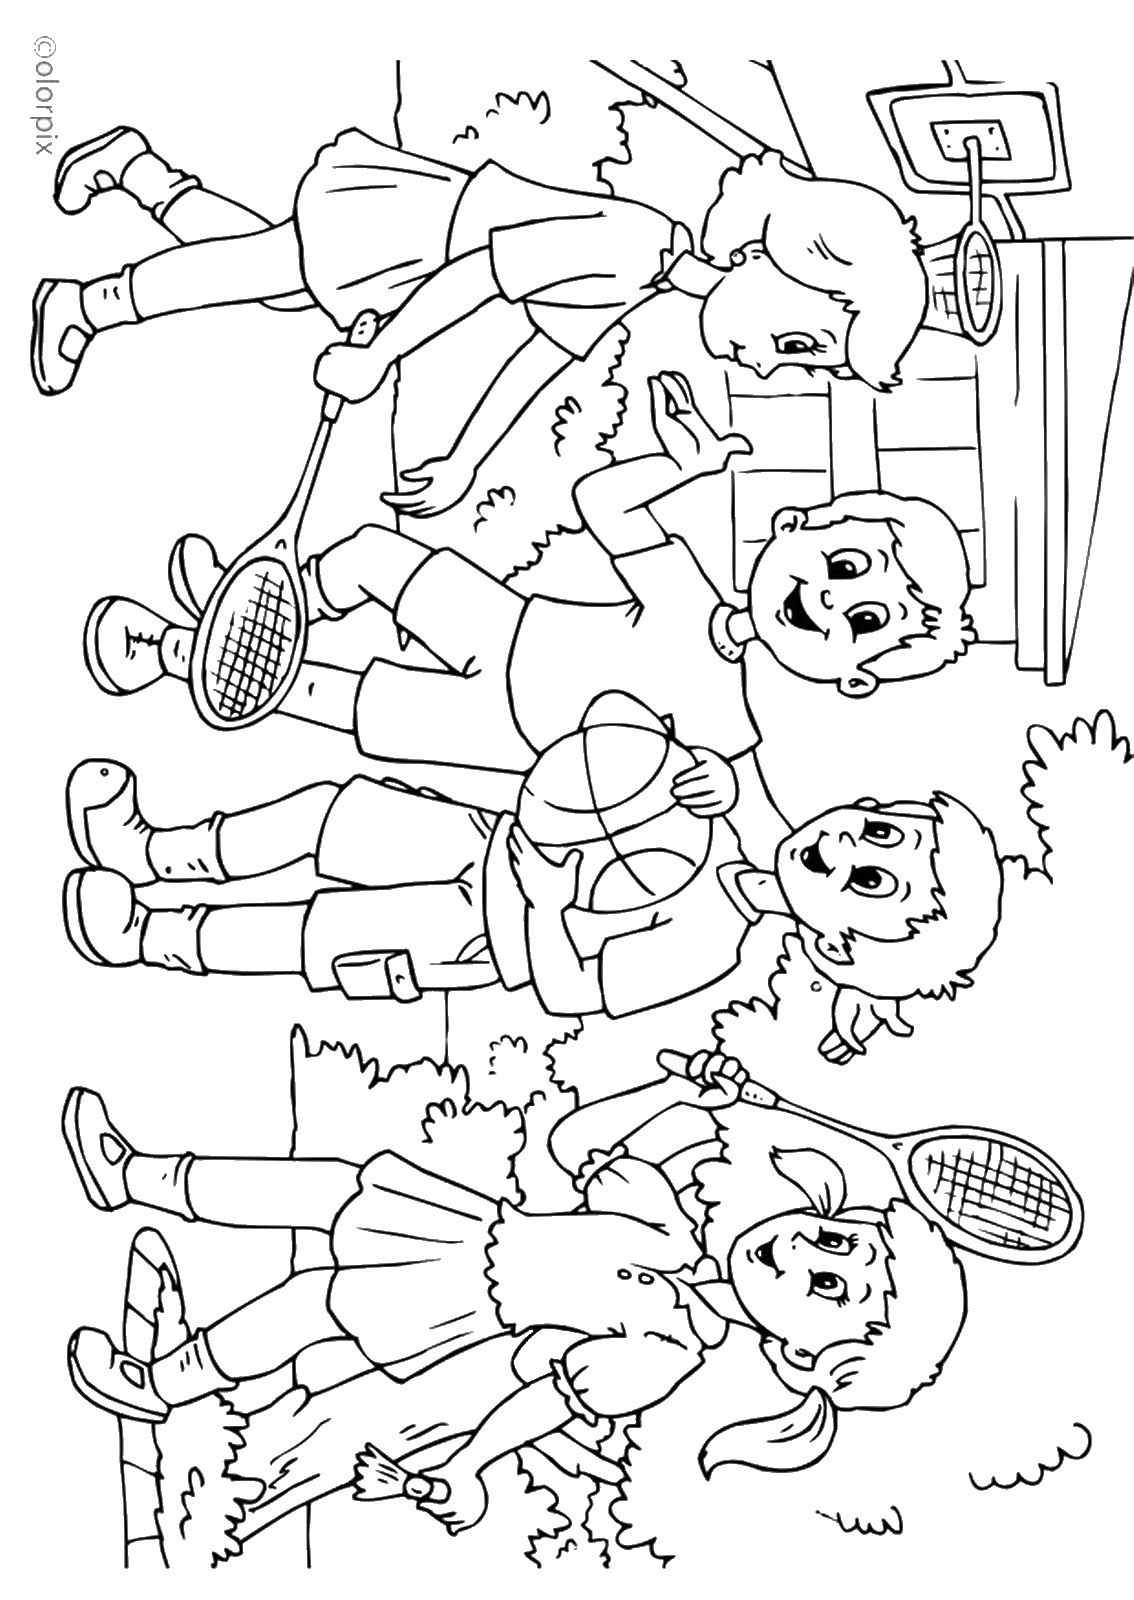 coloring emotions for kids worksheet preschool faces coloring pages online free kids coloring kids emotions for